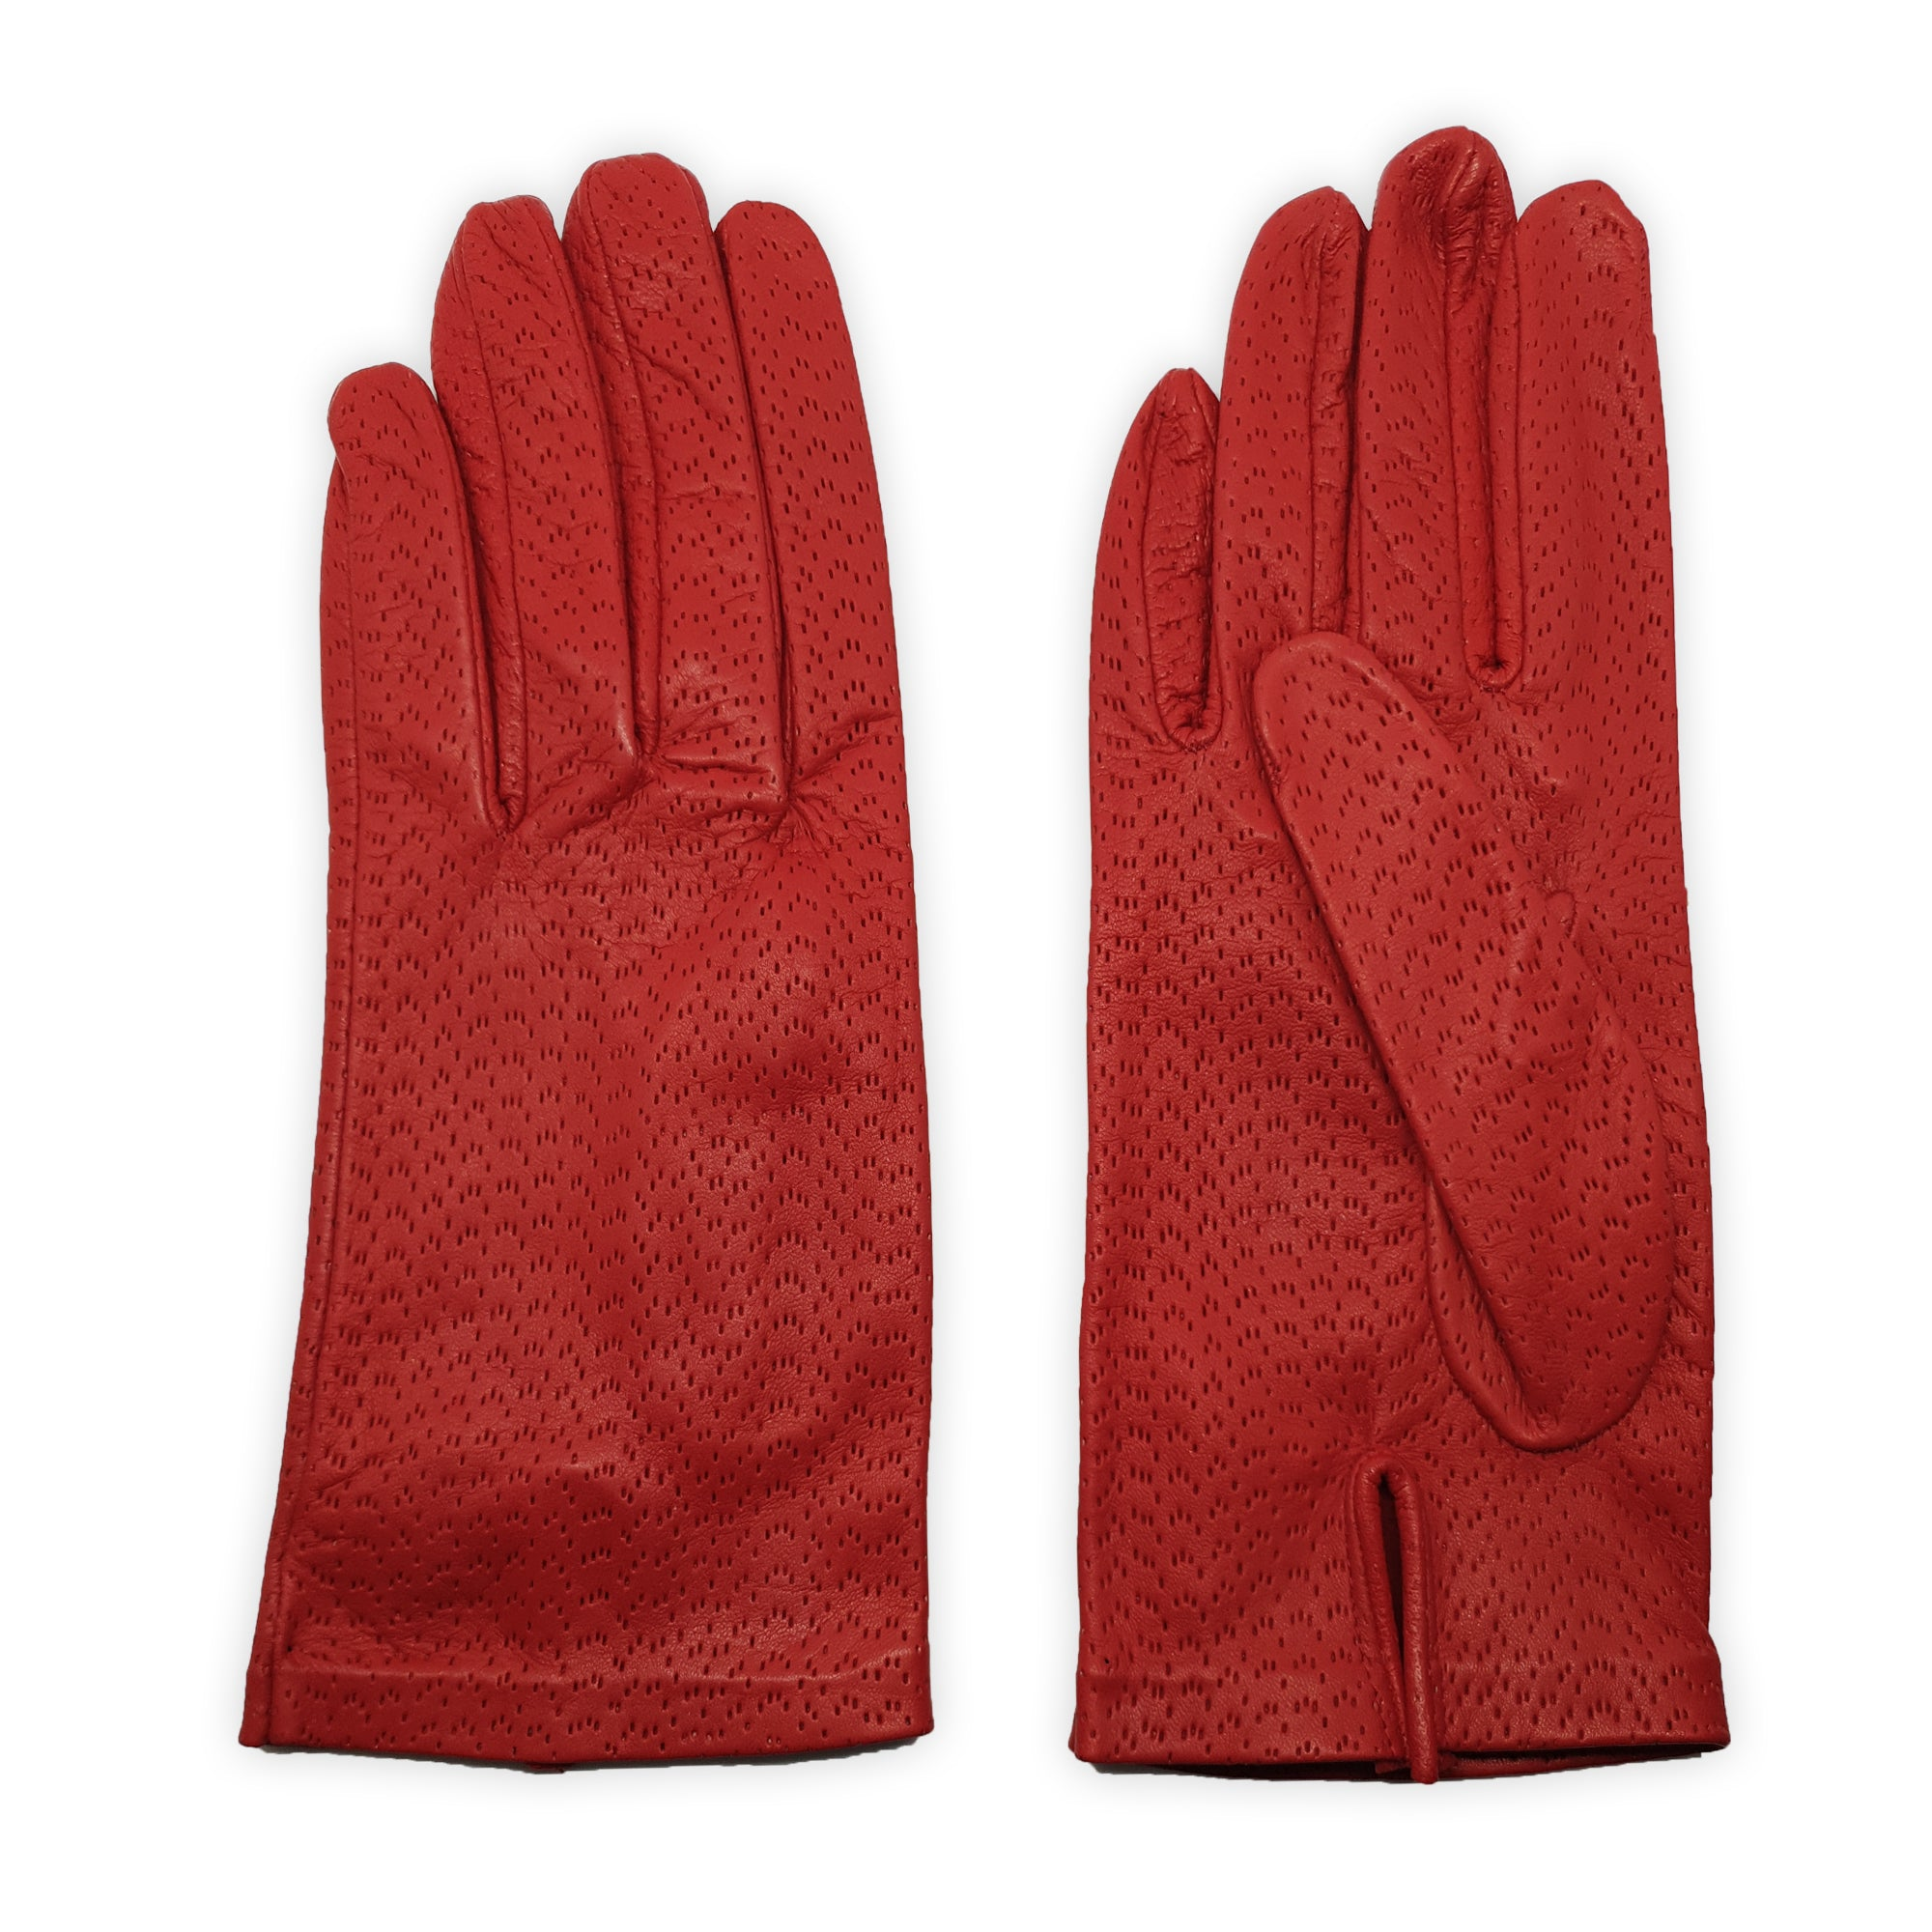 Unlined genuine leather gloves stitched inside all hammered for fresh comfort